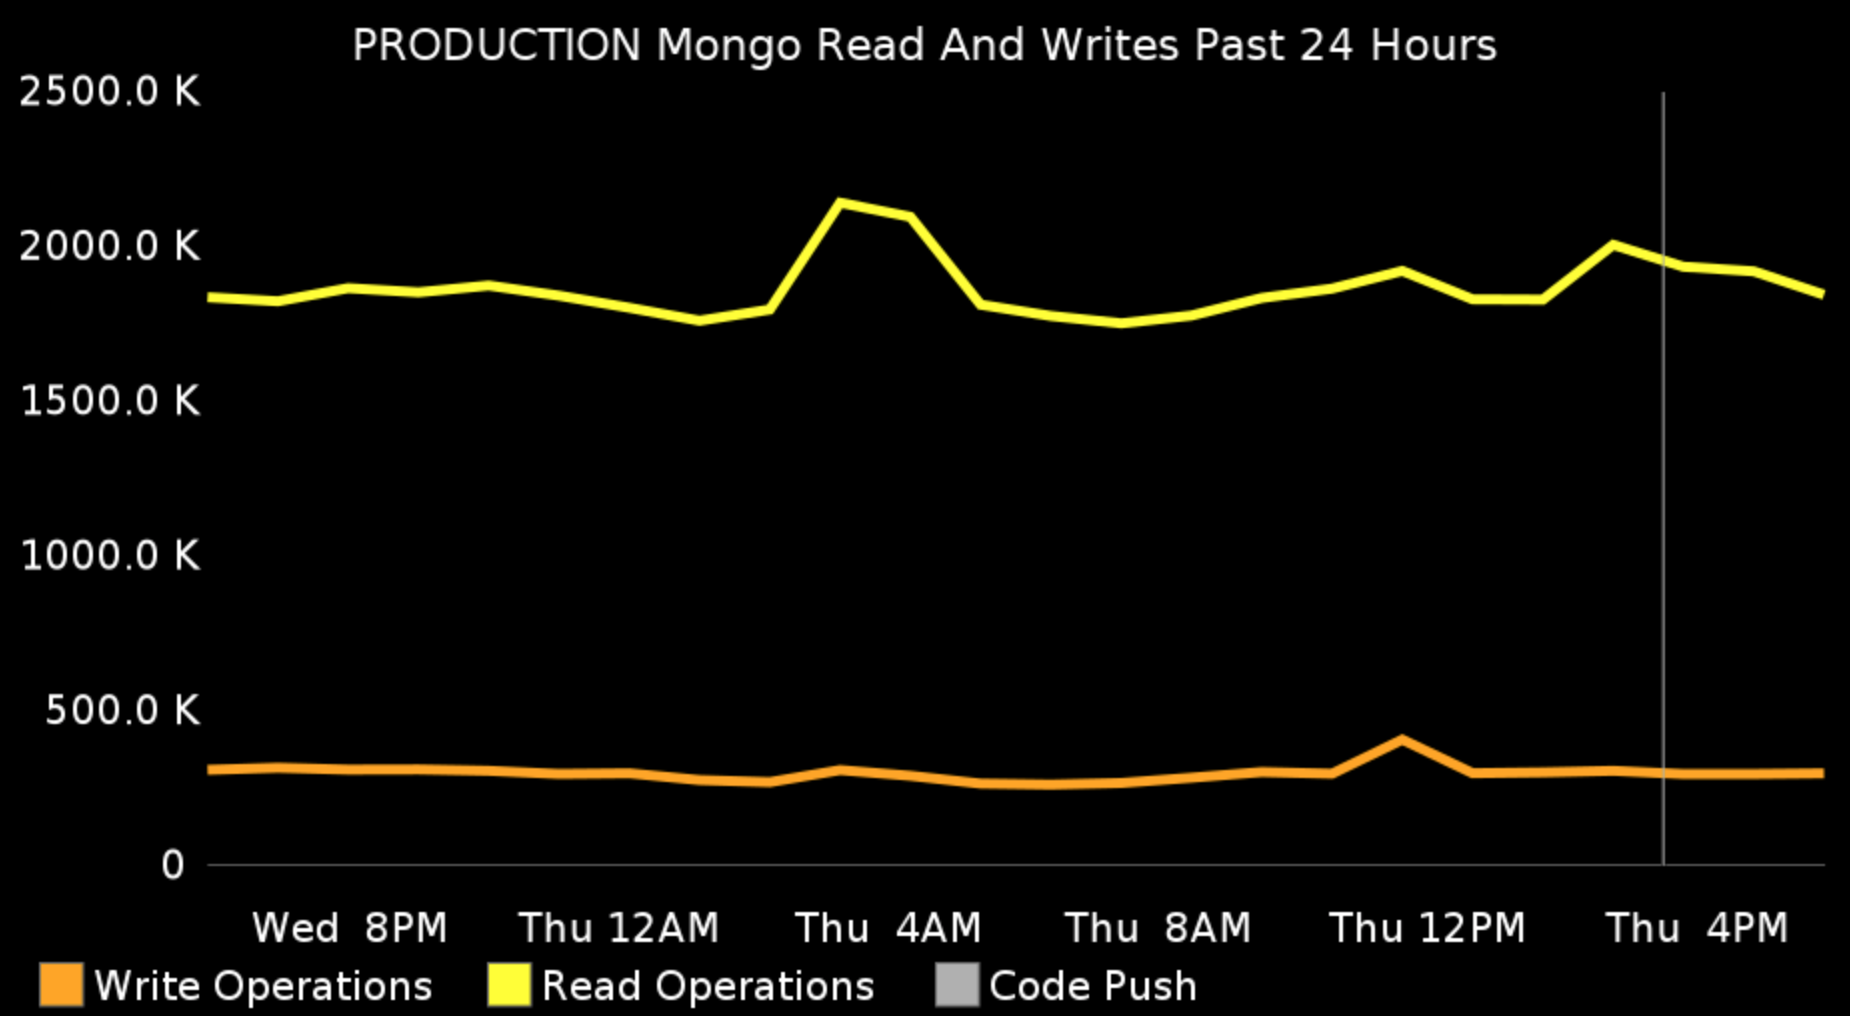 The number of read and write Mongo operations, 24 hours back